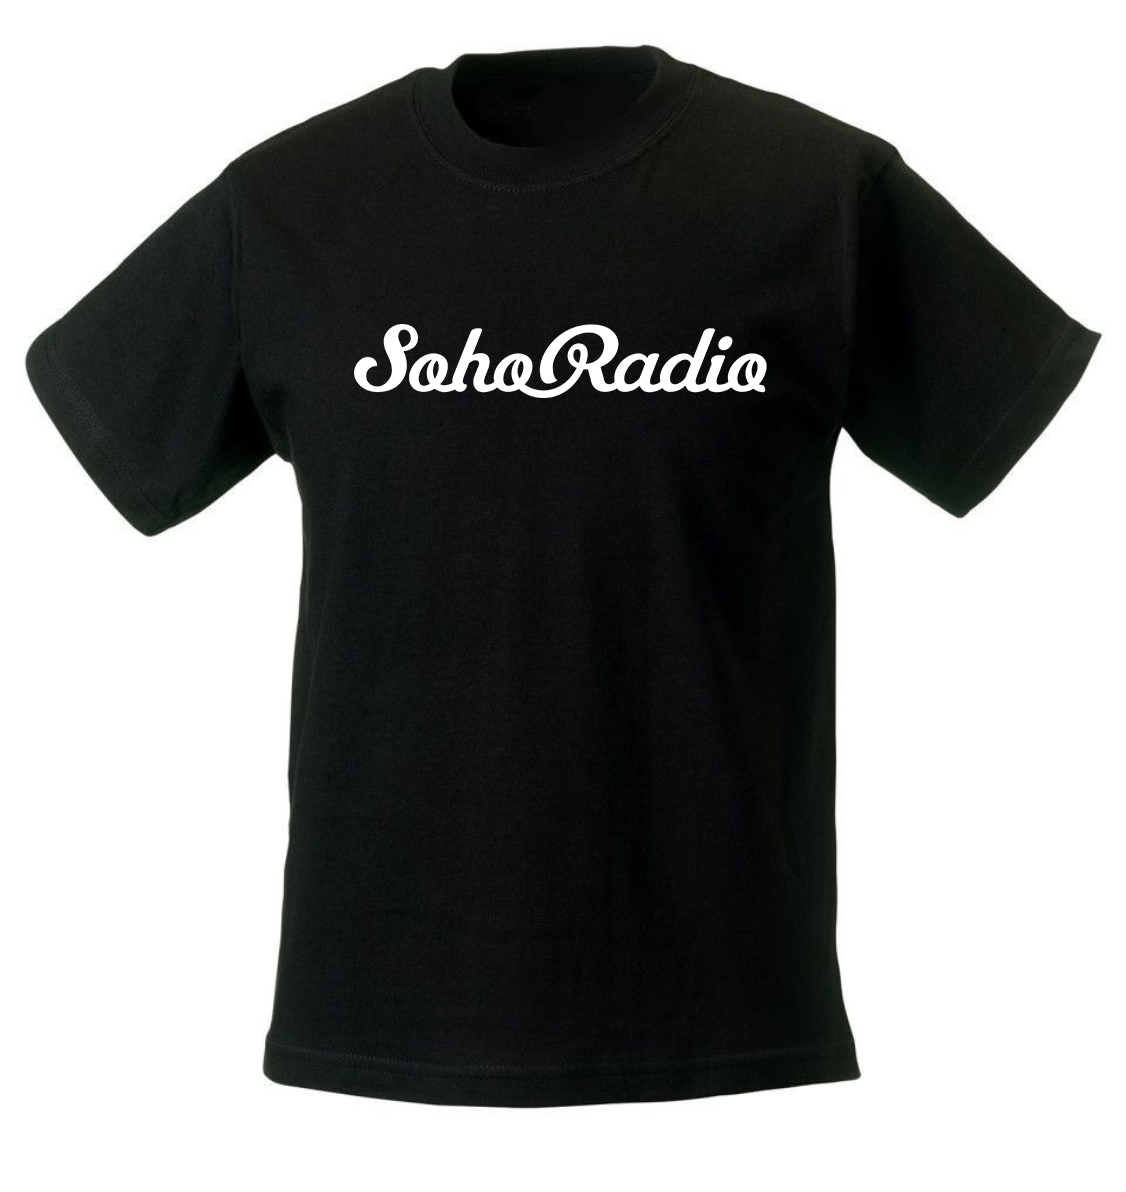 Soho Radio T-Shirt in Black